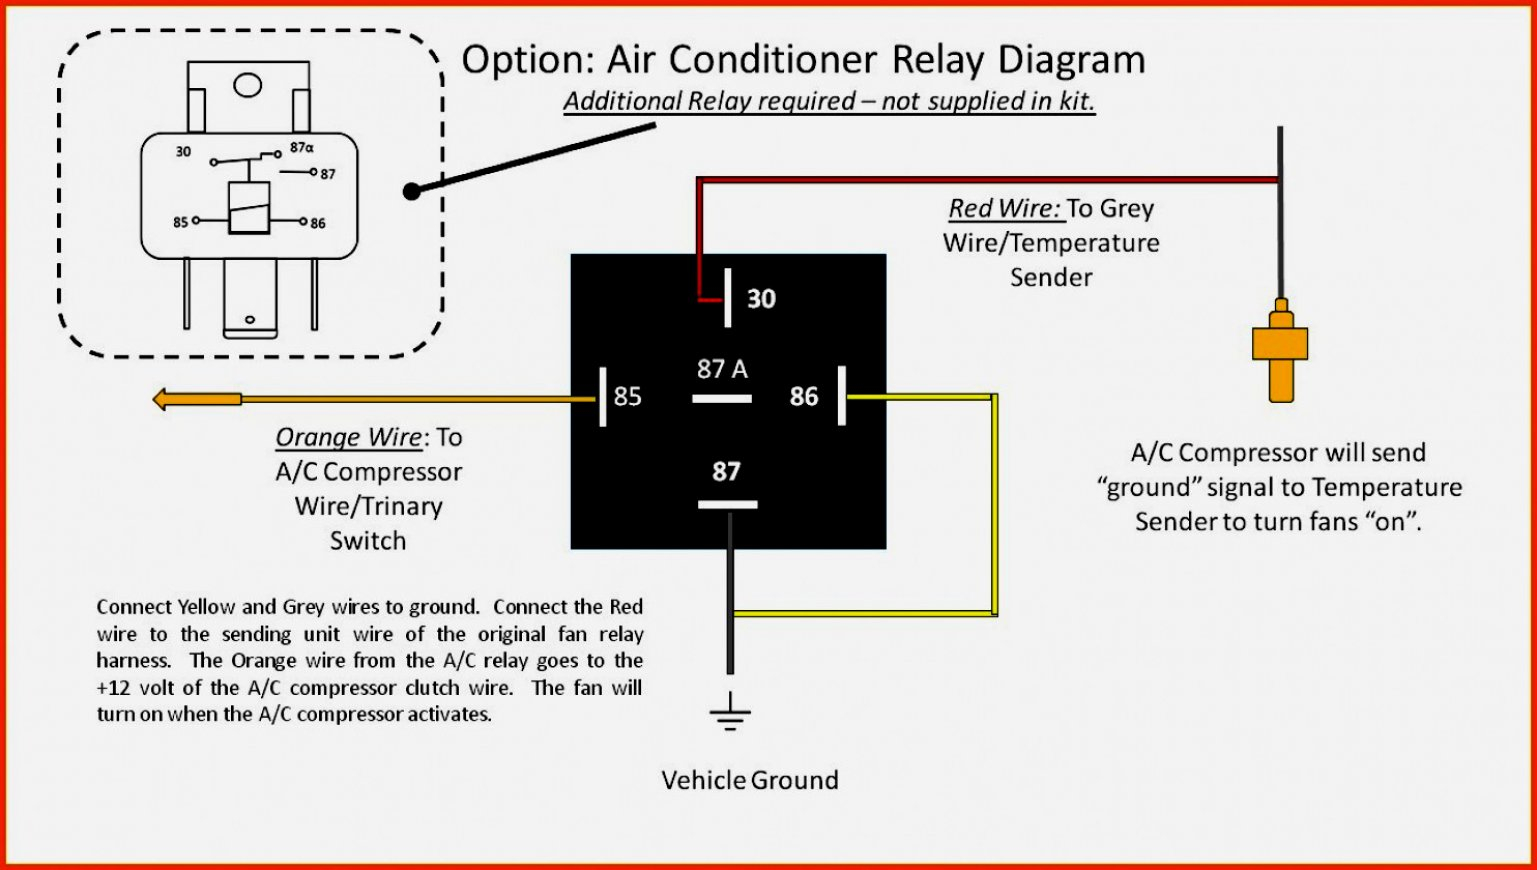 Furnace Blower Relay Diagram - Wiring Diagram Explained - 12 Volt Relay Wiring Diagram